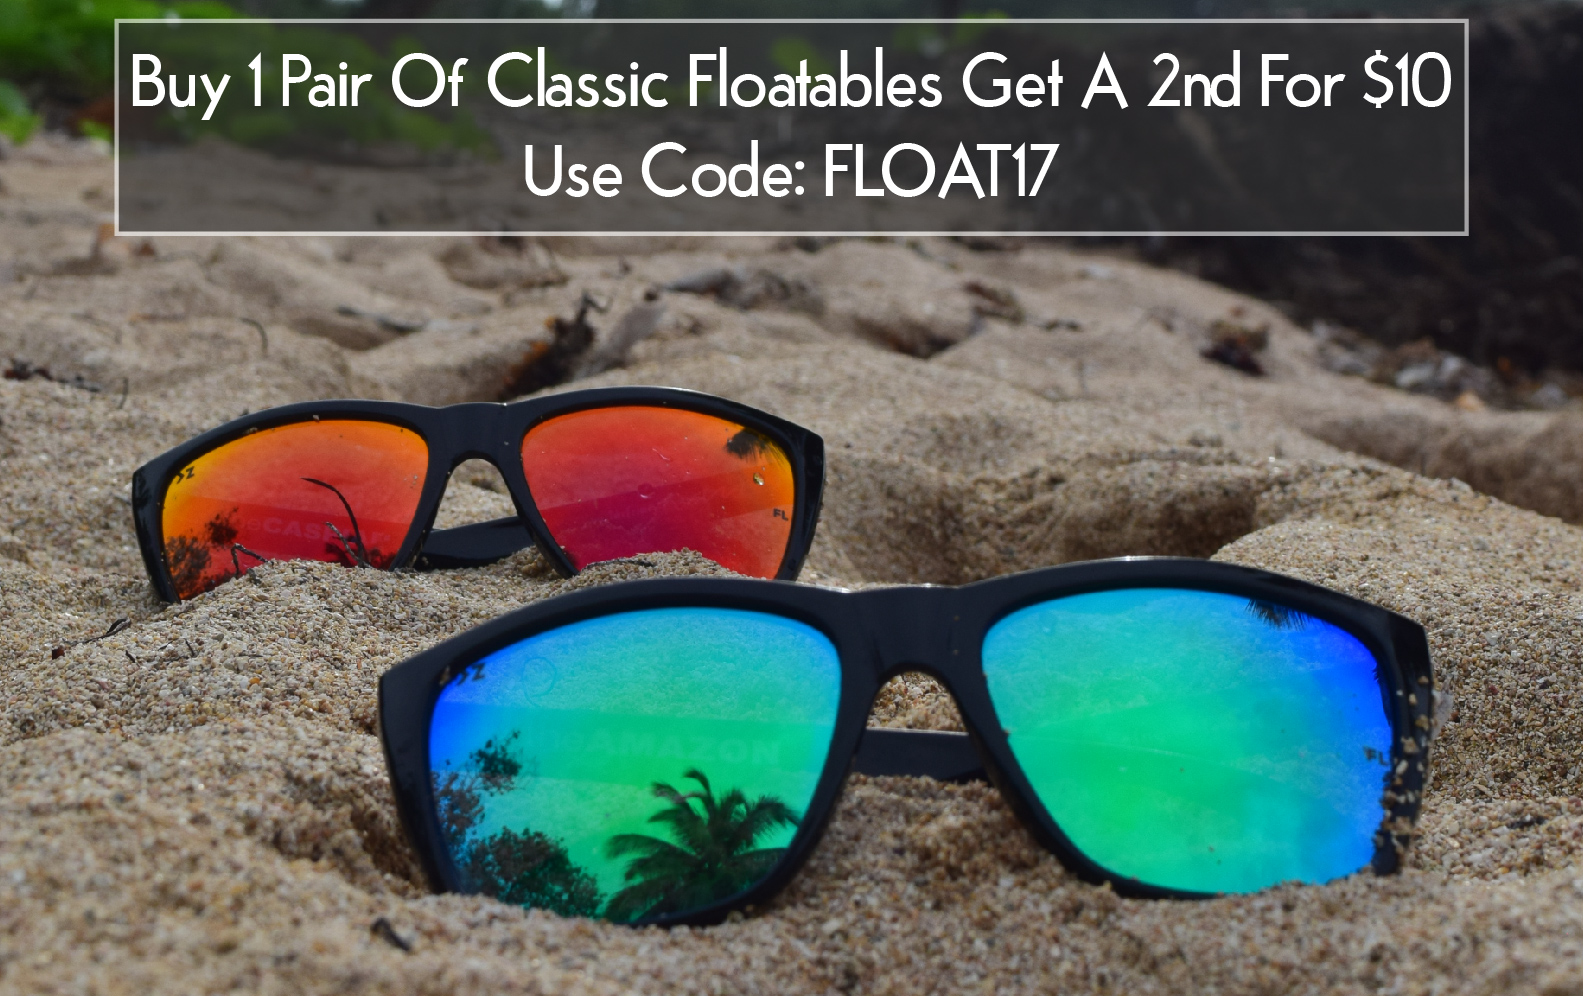 Floatables Offer